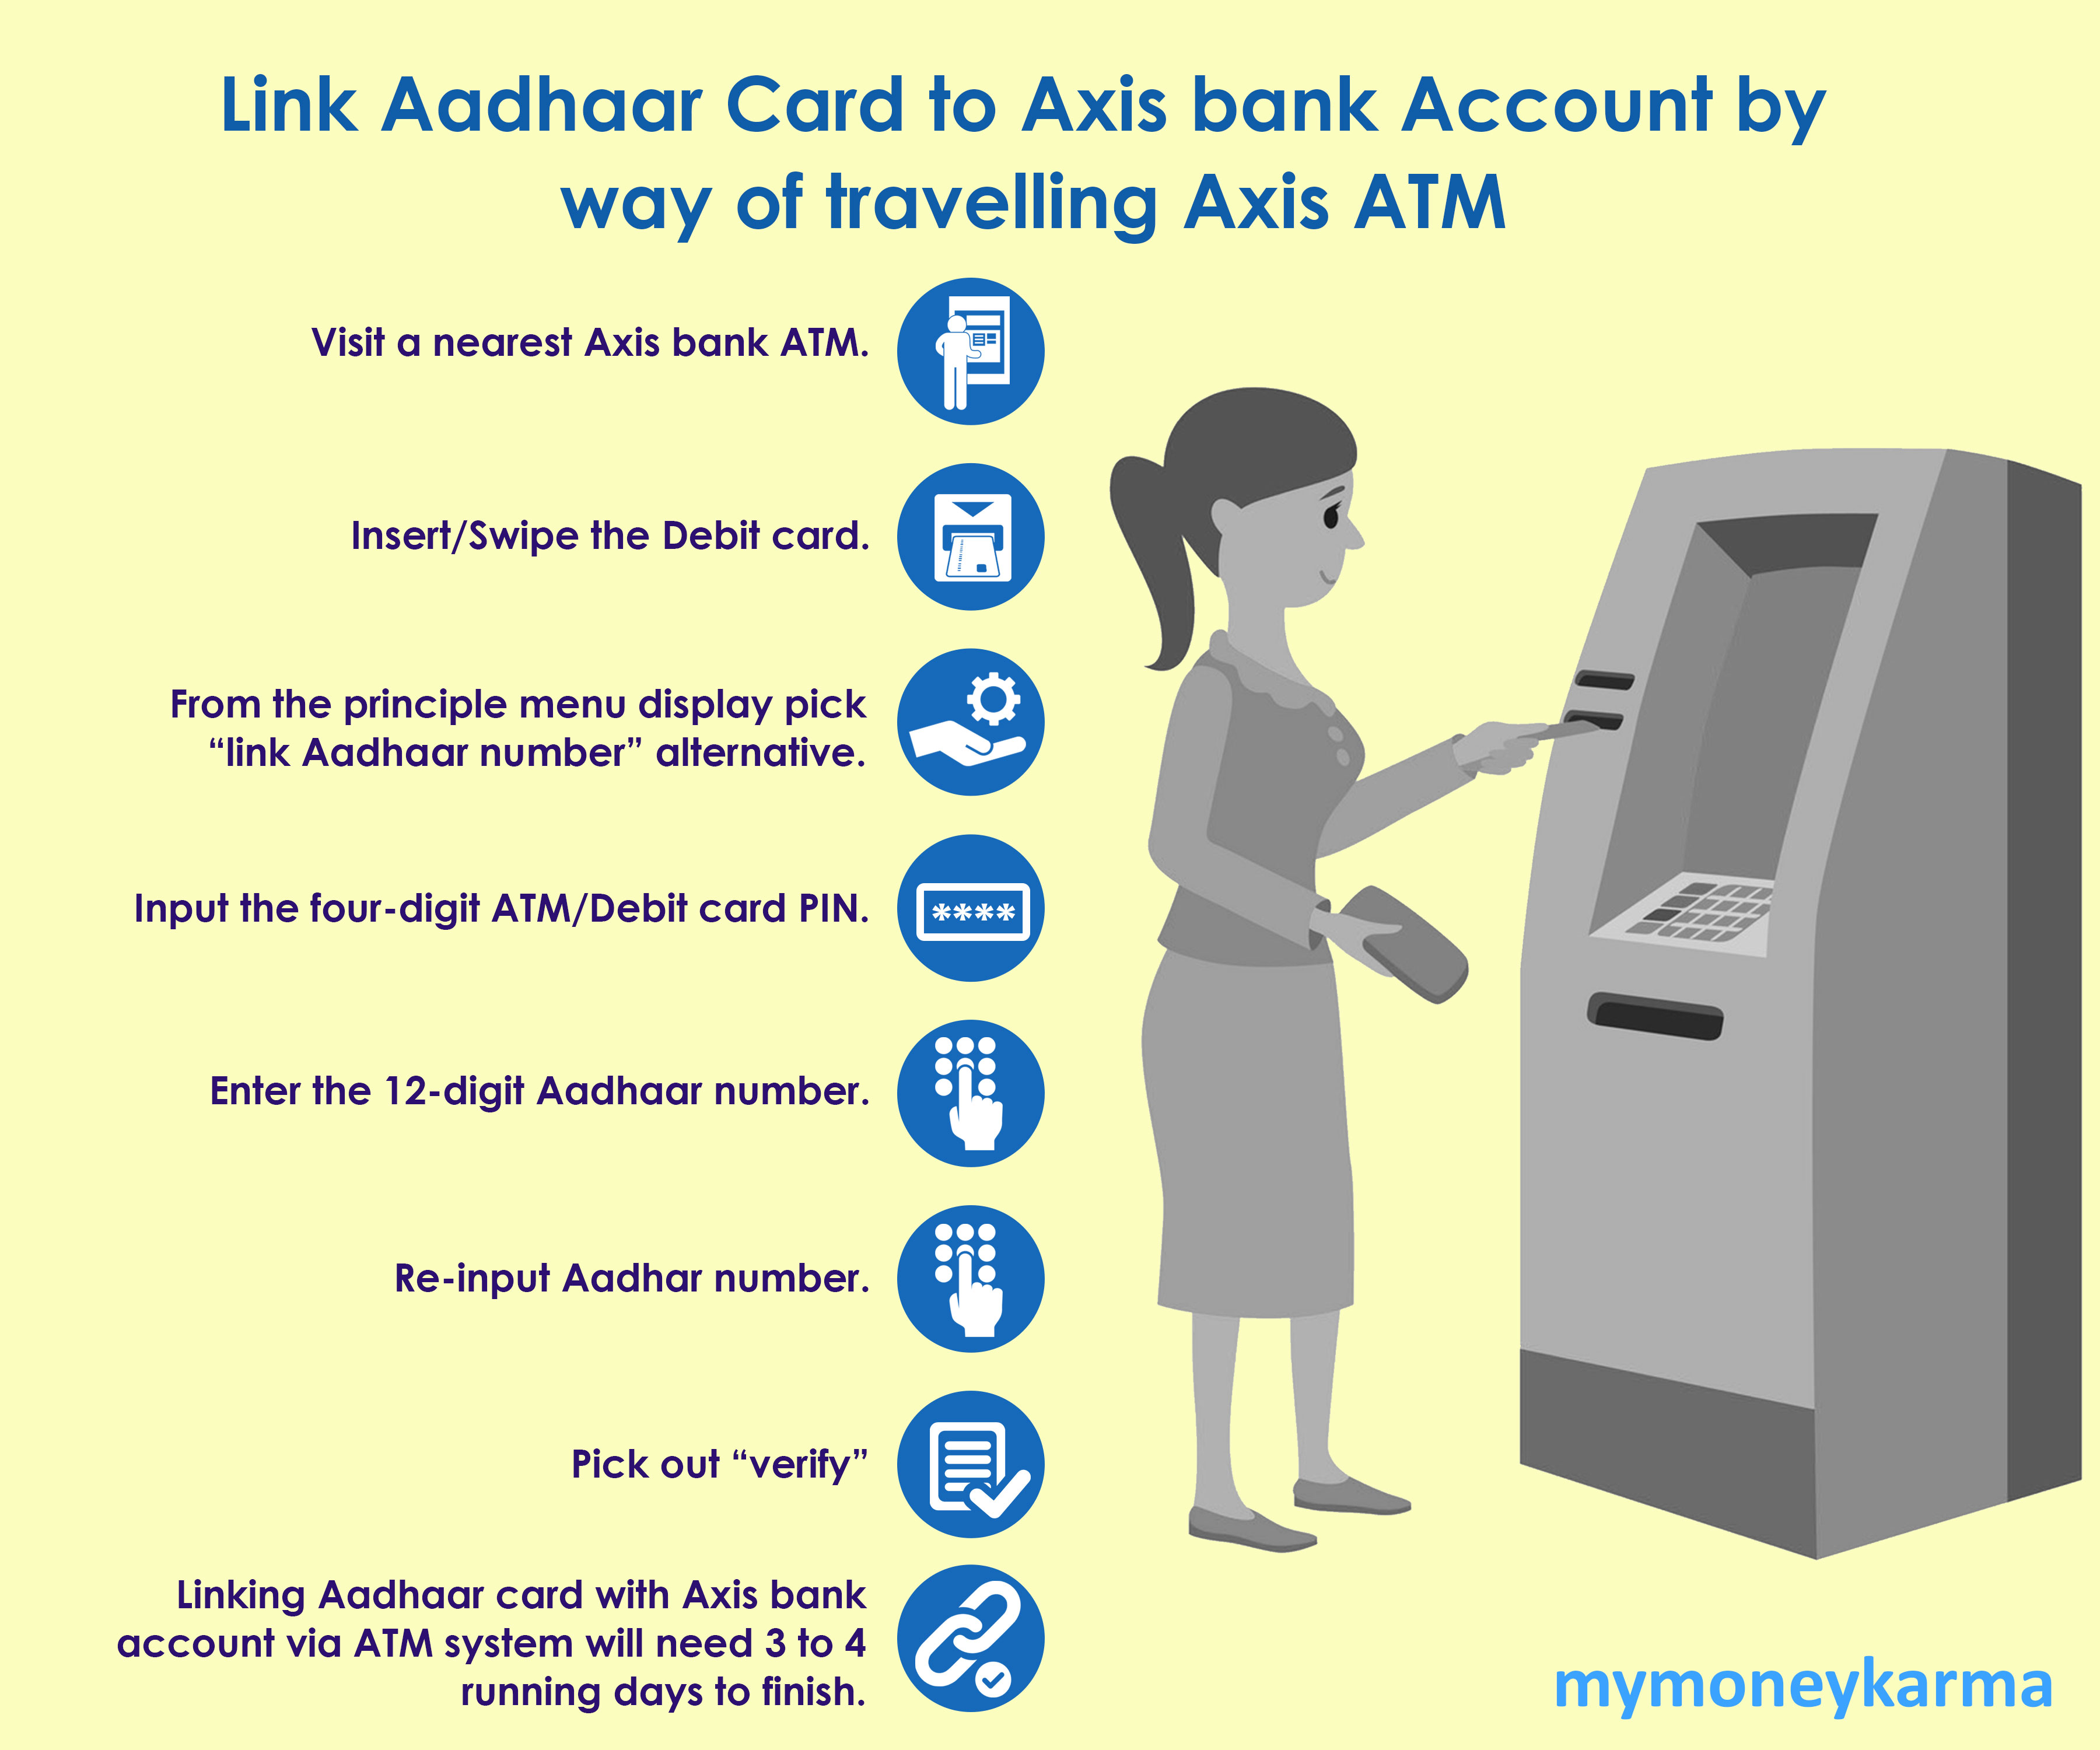 "Visit a nearest Axis bank ATM.                         Insert/Swipe the Debit card.                         From the principle menu display pick ""link Aadhaar number"" alternative.                         Input the four-digit ATM/Debit card PIN.                         Enter the 12-digit Aadhaar number.                         Re-input Aadhaar number.                         Pick out ""verify"".                         Linking Aadhaar card with Axis bank account via ATM system will need 3 to 4 running days to finish."